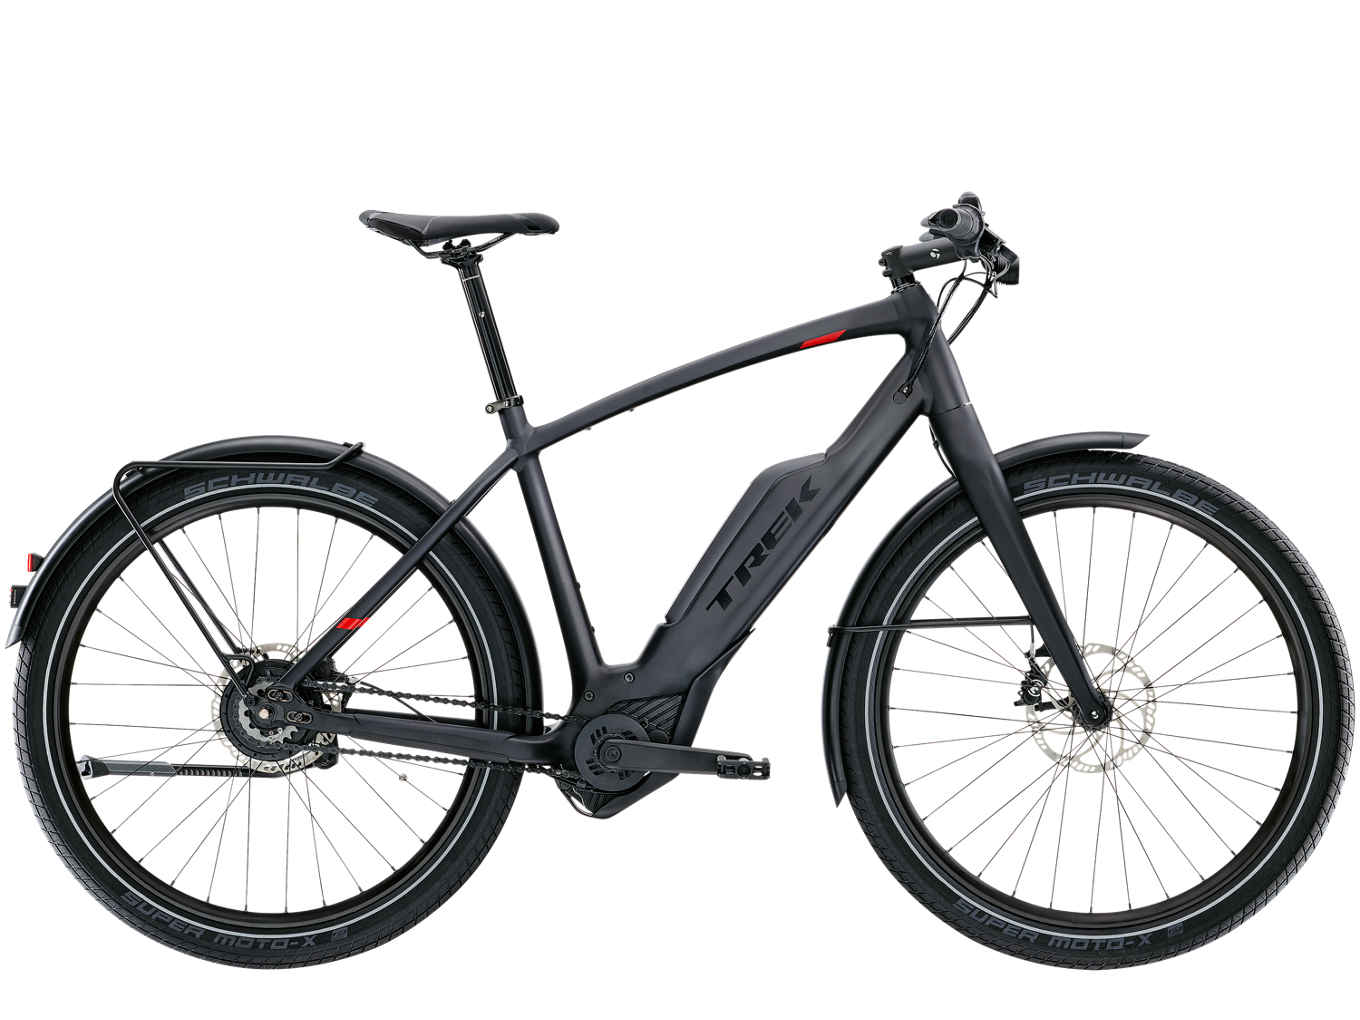 La city ebike Trek Super Commuter+ 9 (trekbikes)